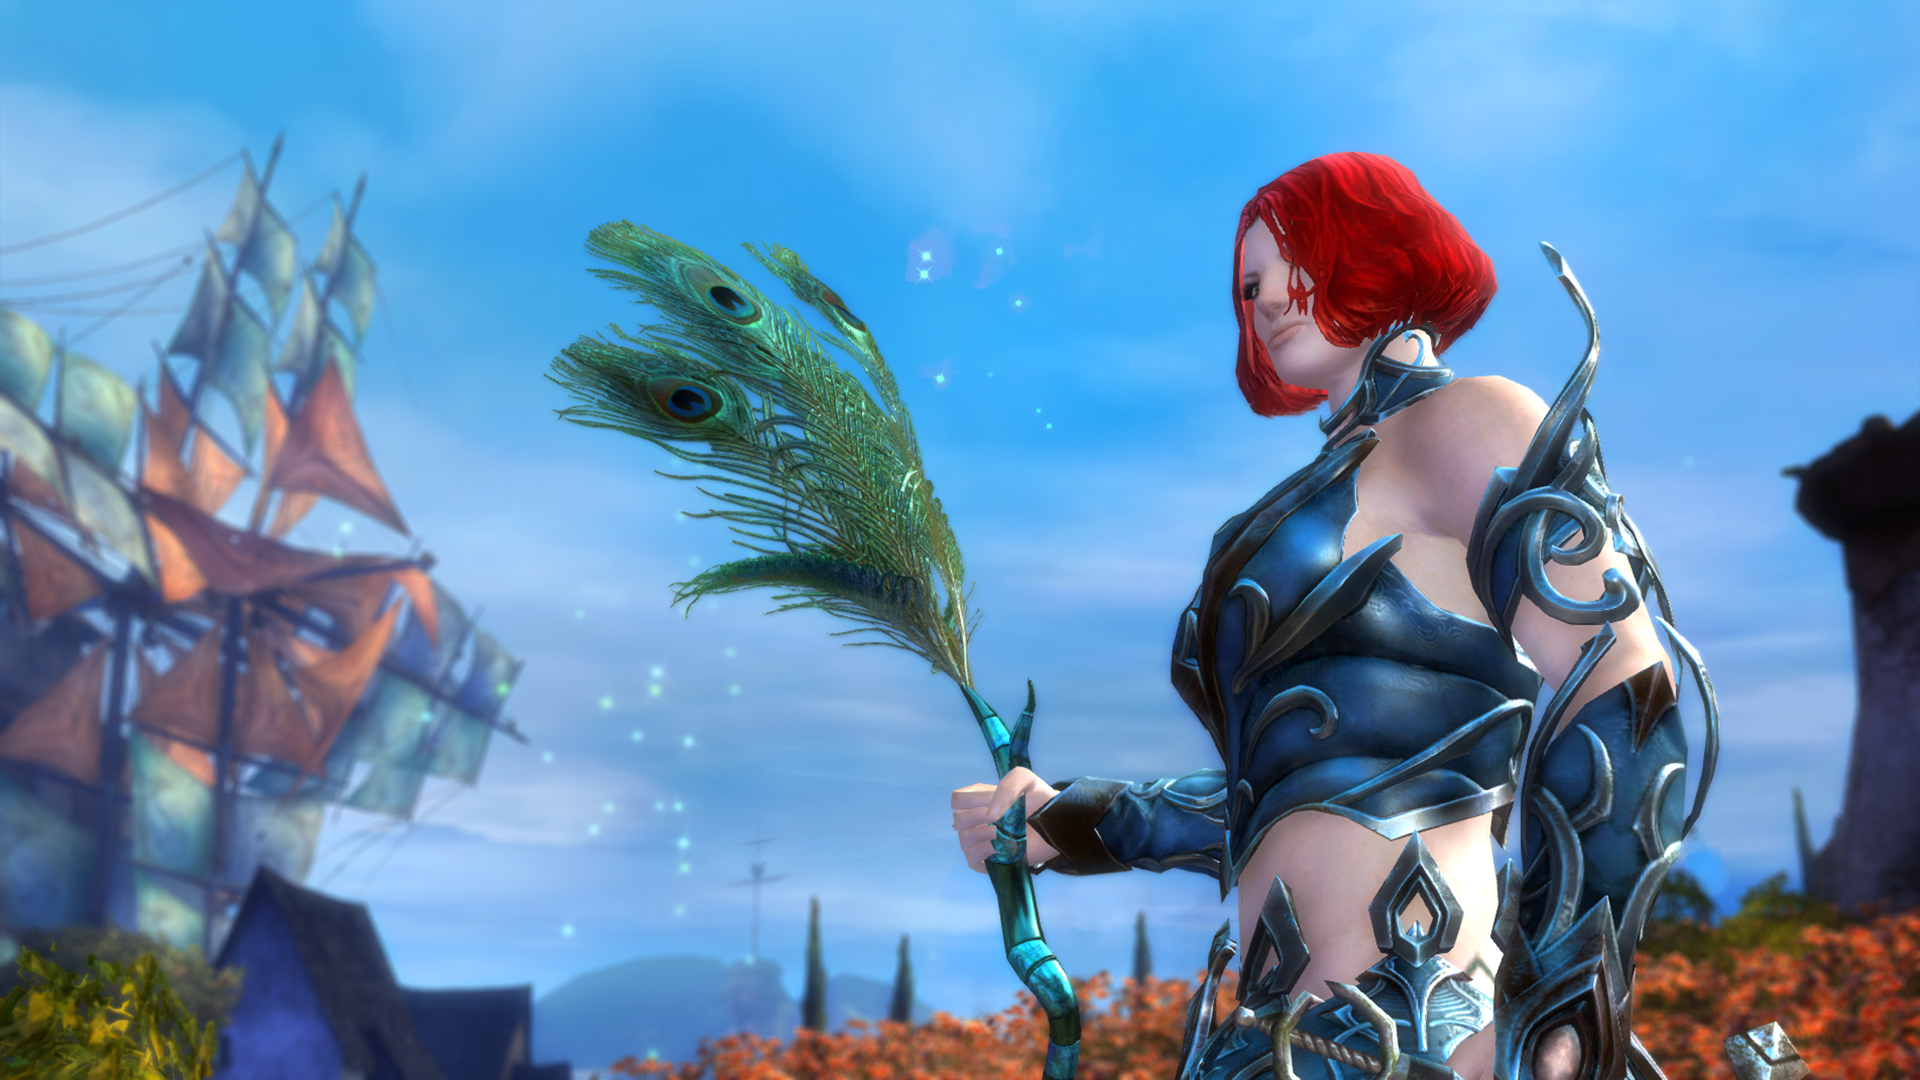 gw2 how to keep weapon aura after weapon is sheathed